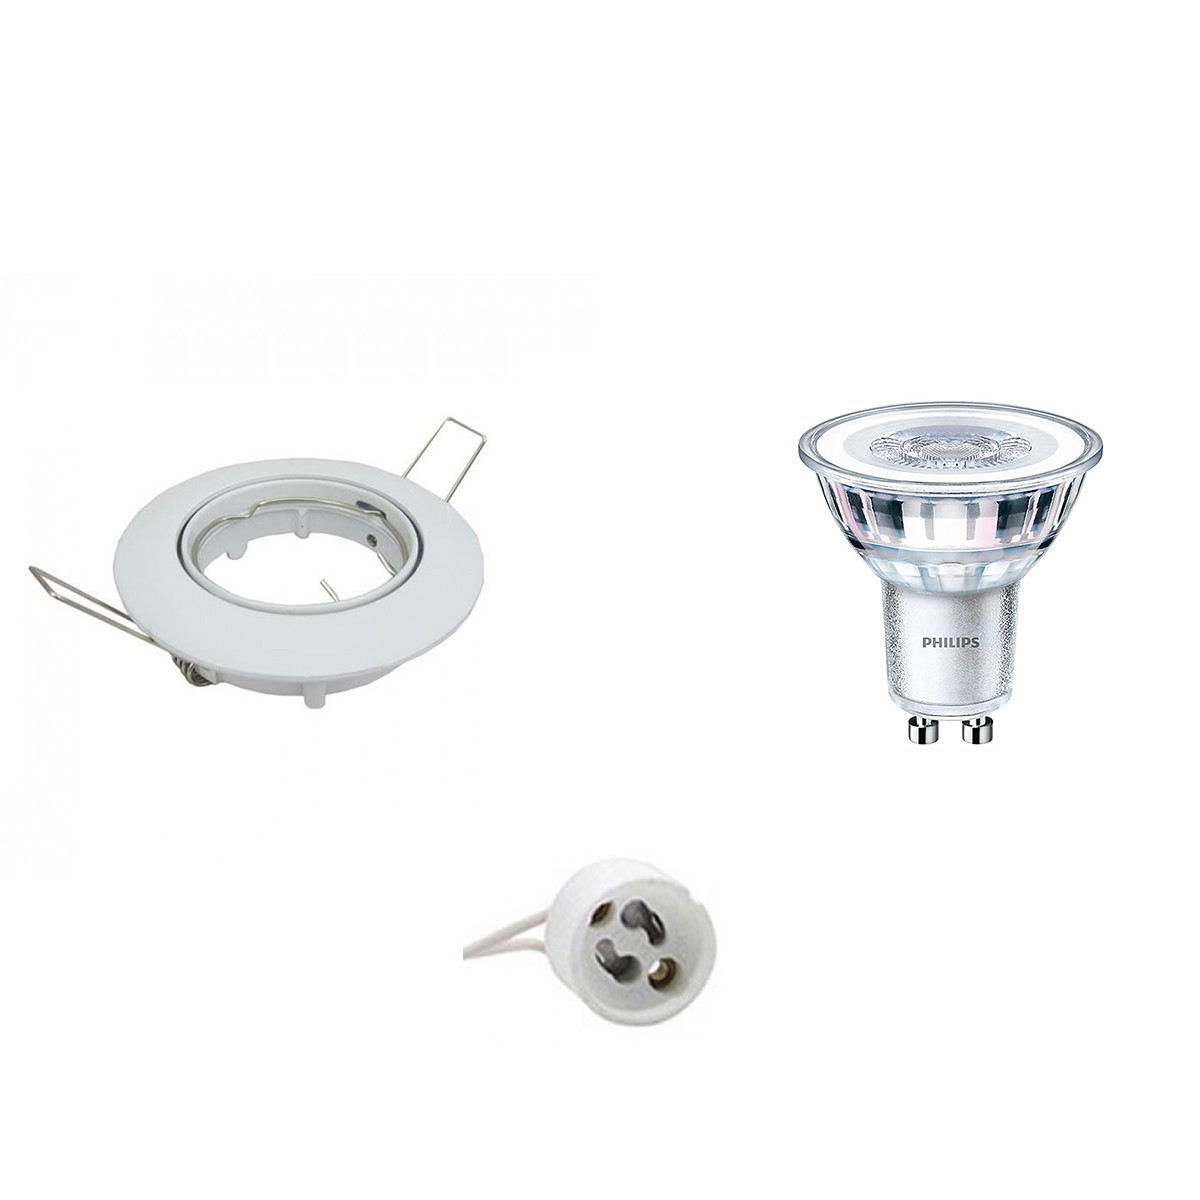 PHILIPS - LED Spot Set - CorePro 830 36D - GU10 Fitting - Dimbaar - Inbouw Rond - Glans Wit - 5W - W